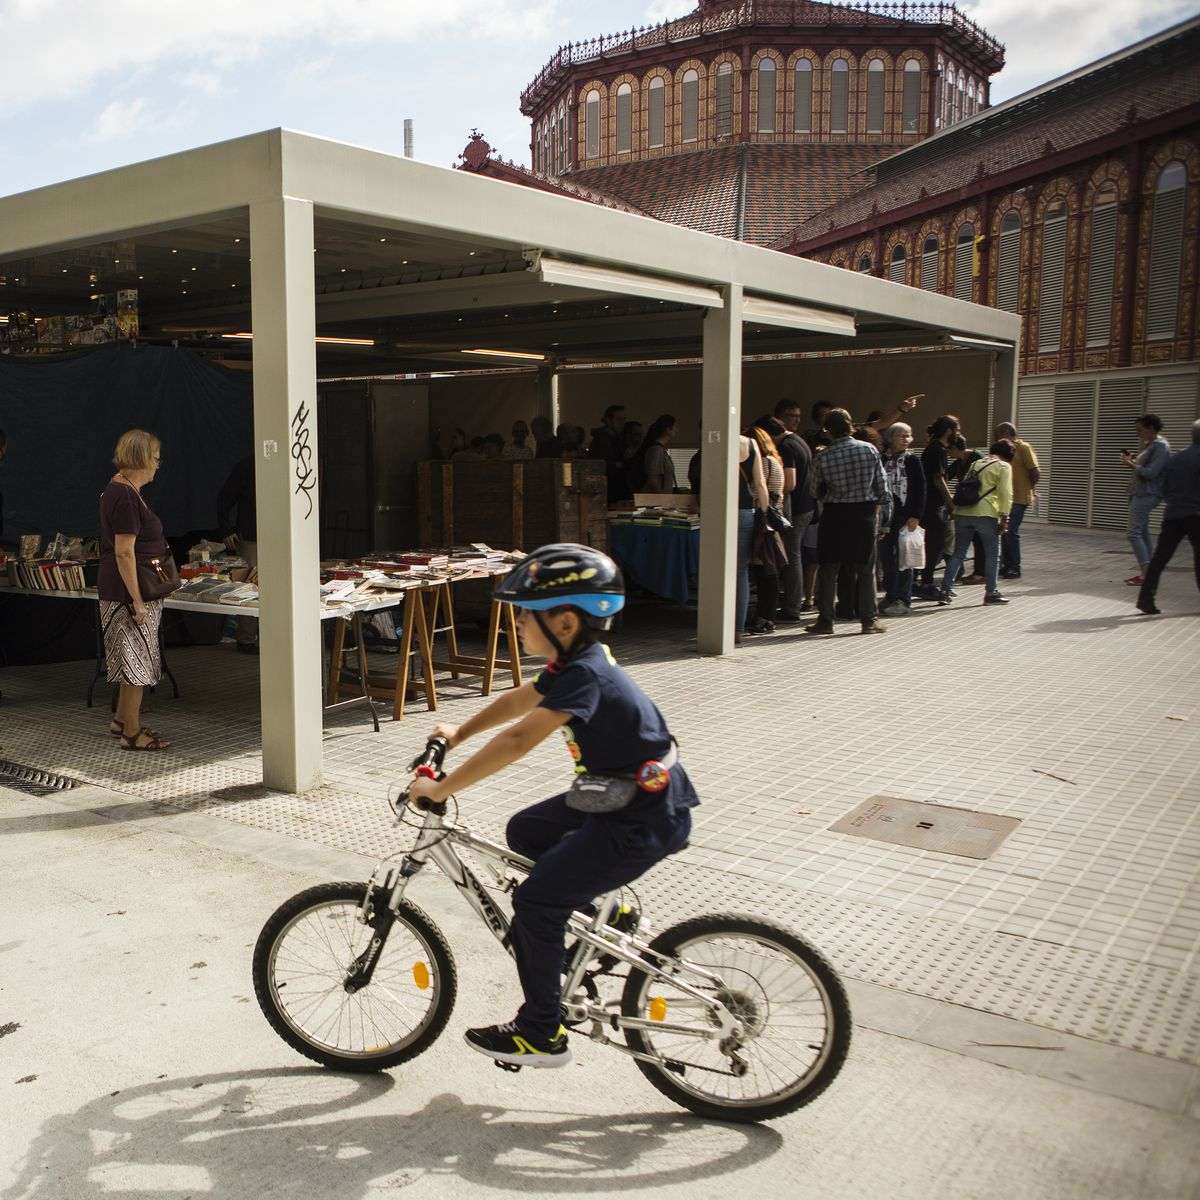 A boy rides a bike next to the open-air book market outside the newly renovated Sant Antoni market, in a superblock.